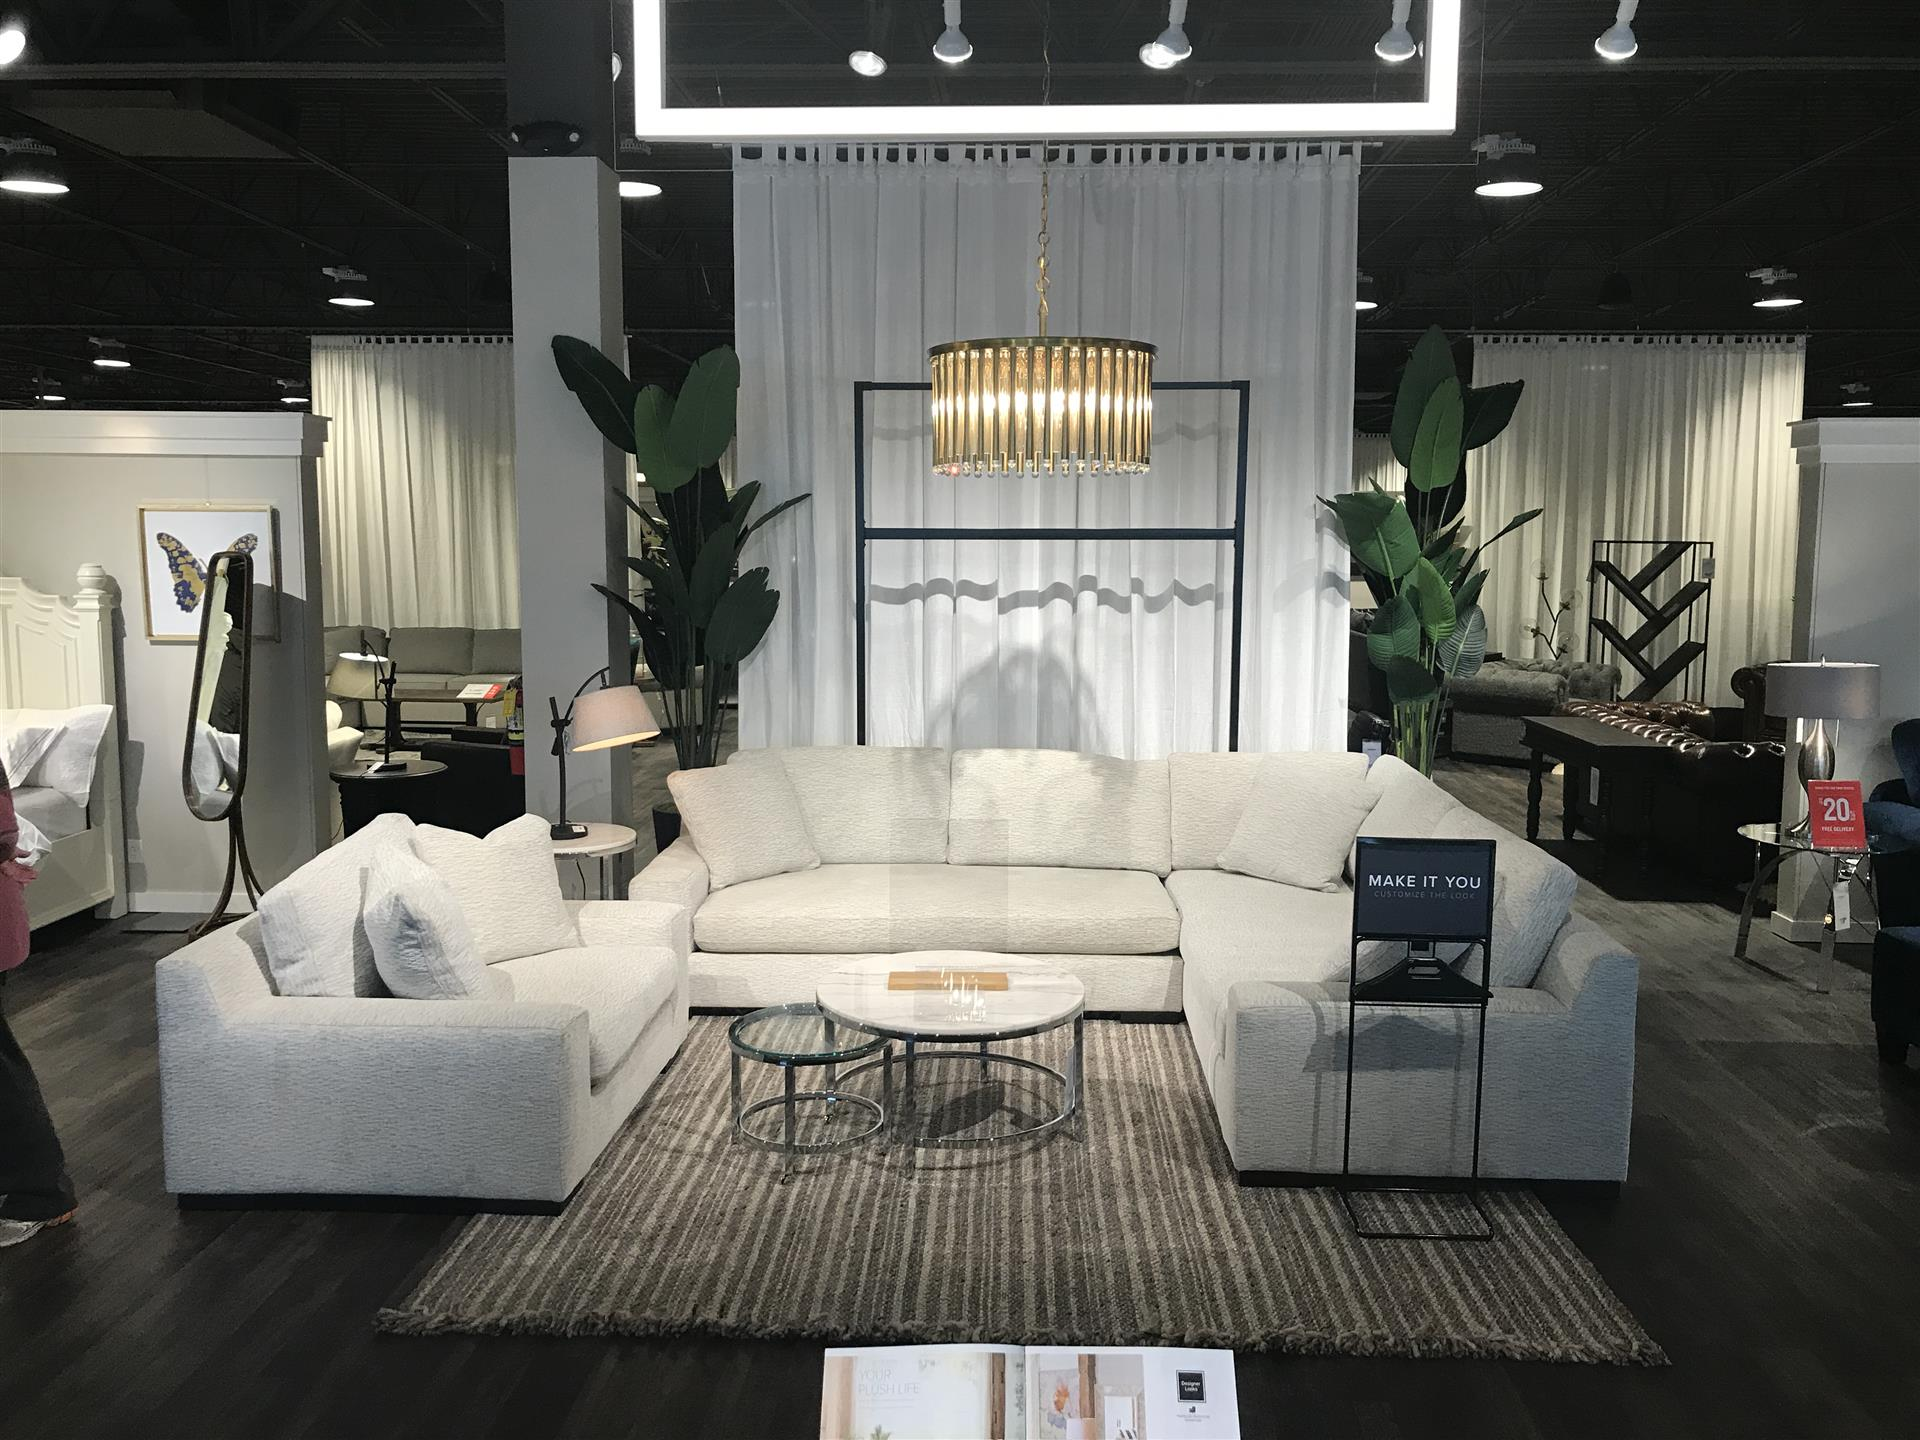 Furniture show room showing white  love seat and sofa with fixture overhead and lamp on side table, glasstop and marble circular coffee table in the middle